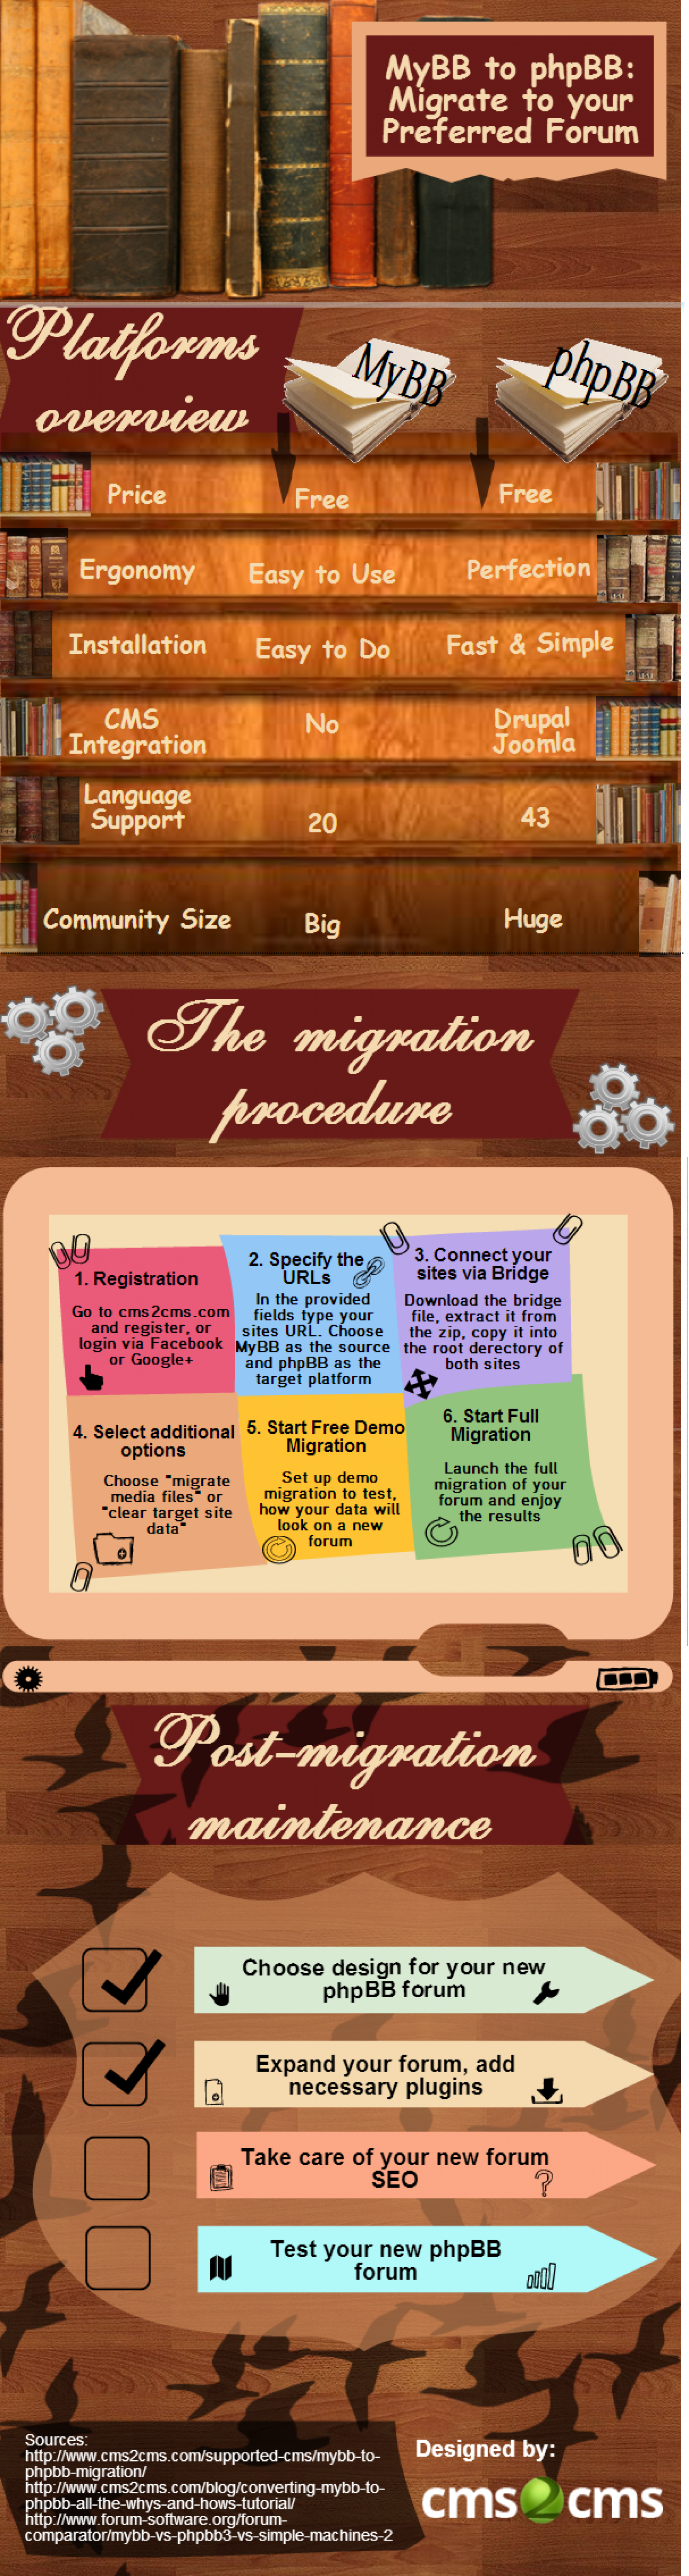 MyBB to phpBB: Easy Migration to your Preferred Forum Infographic